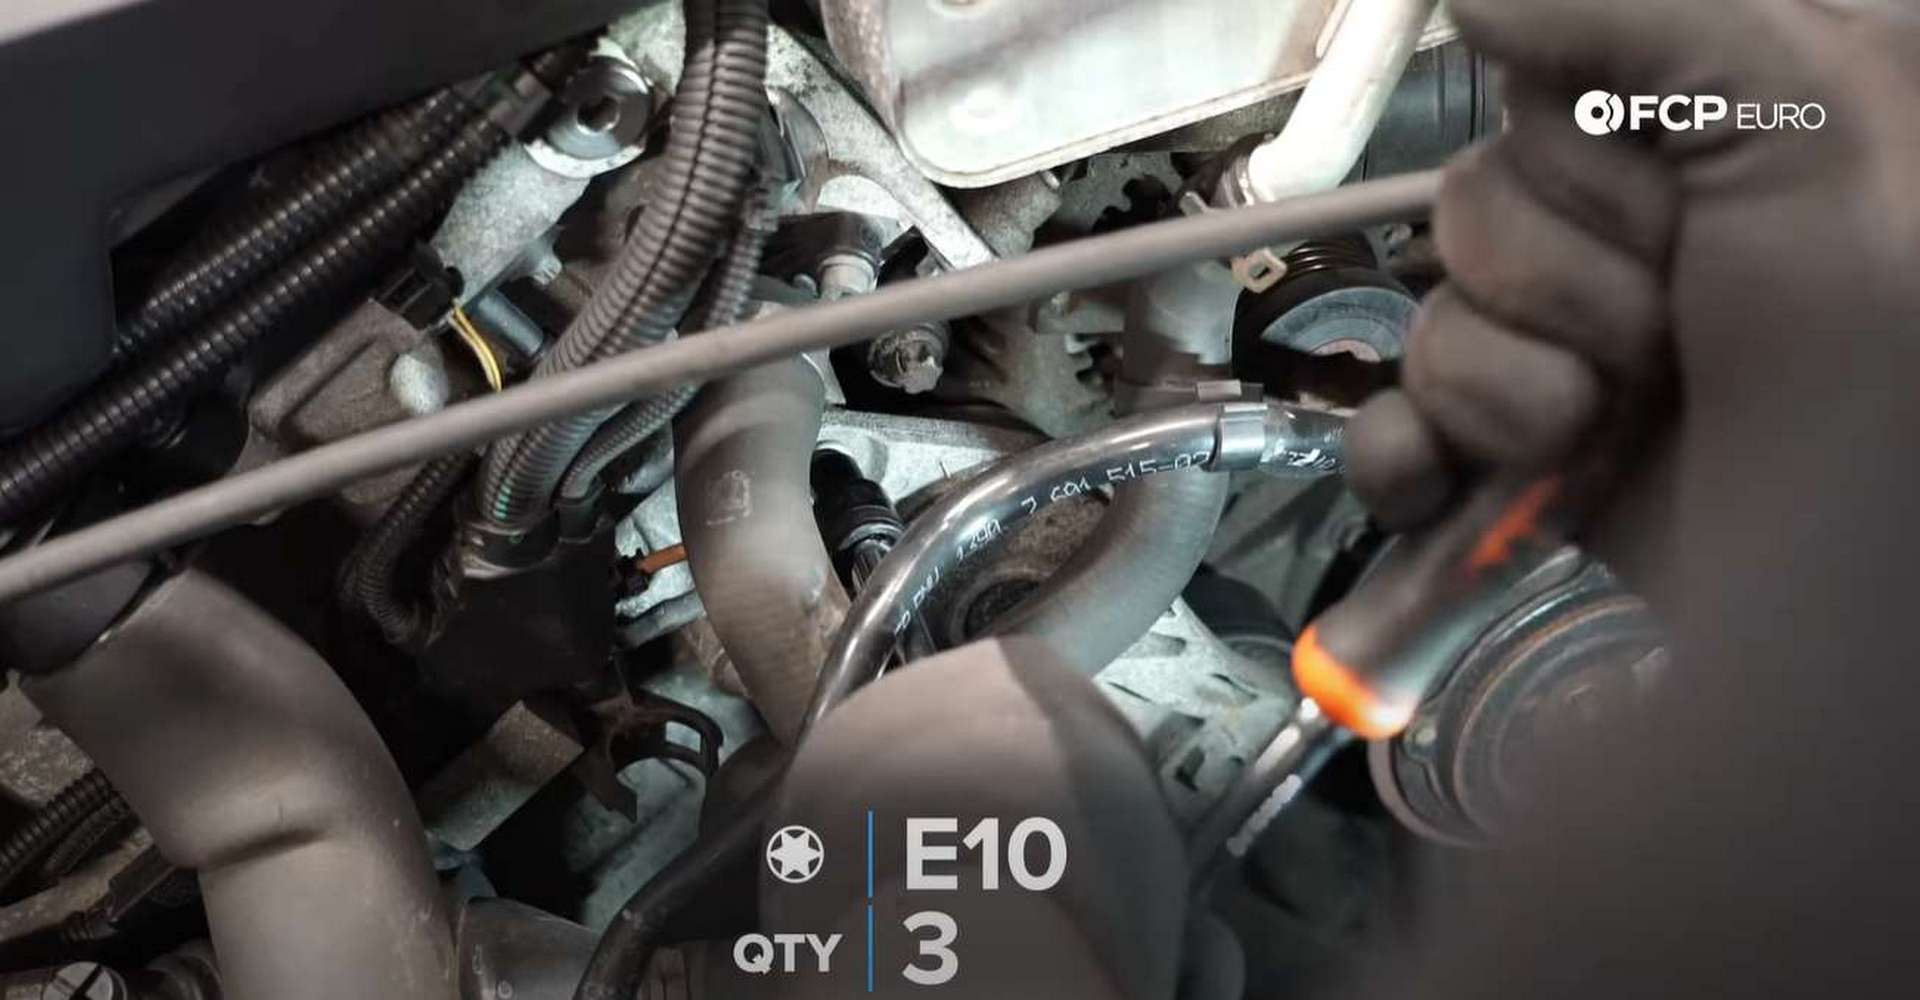 DIY BMW F30 Serpentine Belt Replacement removing the tensioner's bolts